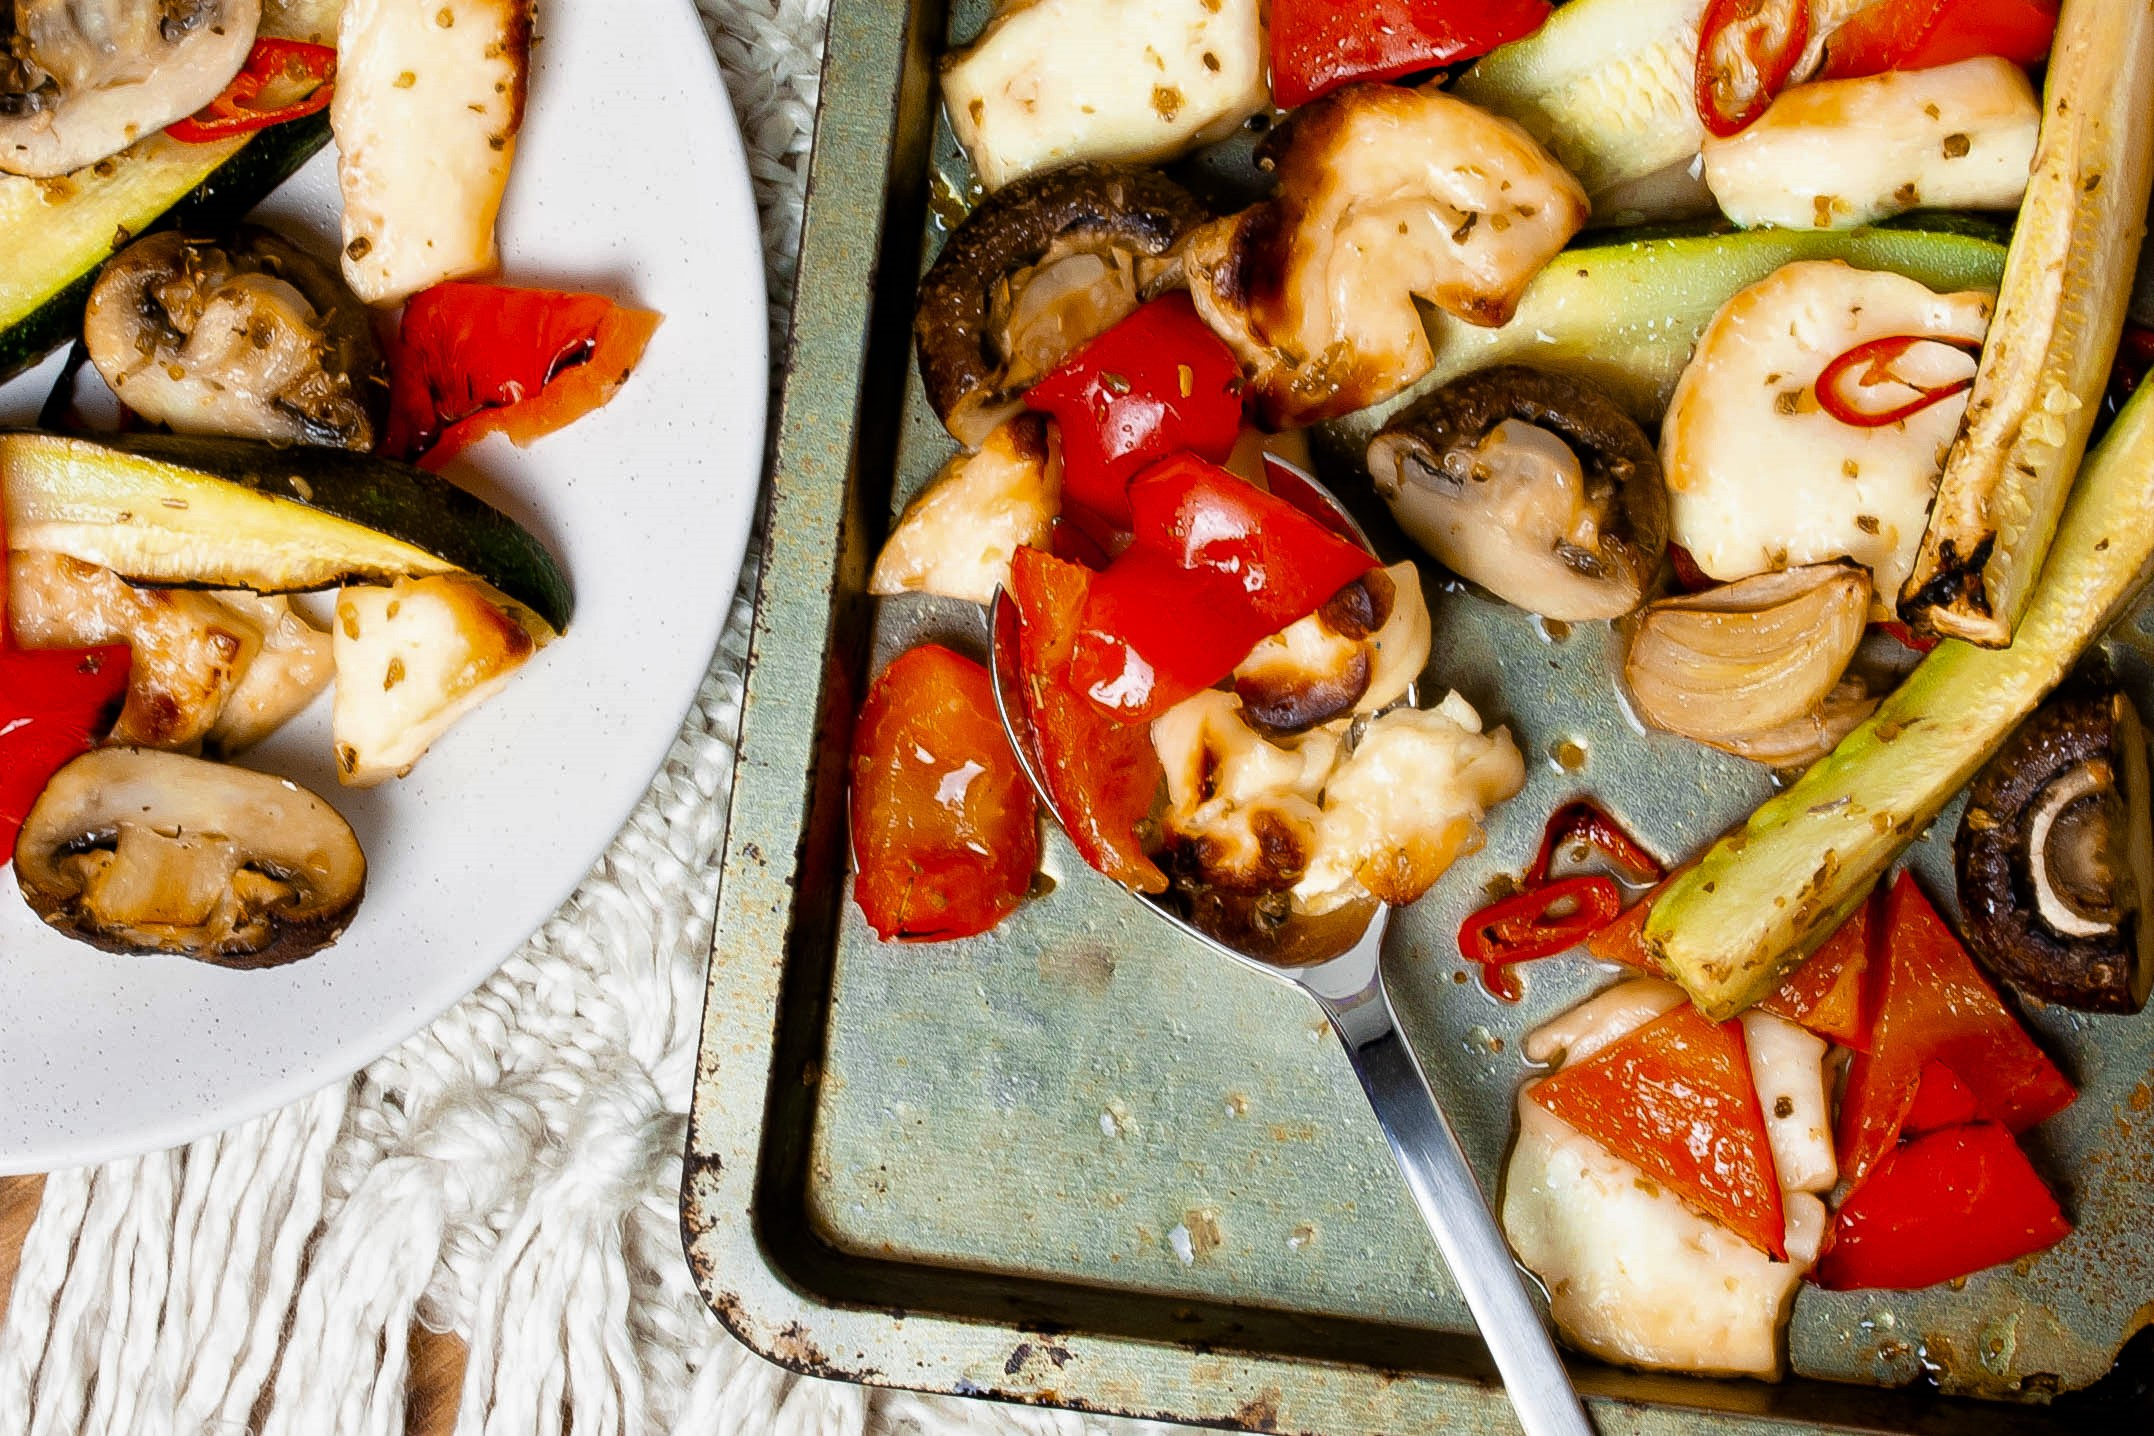 Haloumi cheese, red peppers and courgettes with fresh chili and garlic, roasted and served from a metal pan.